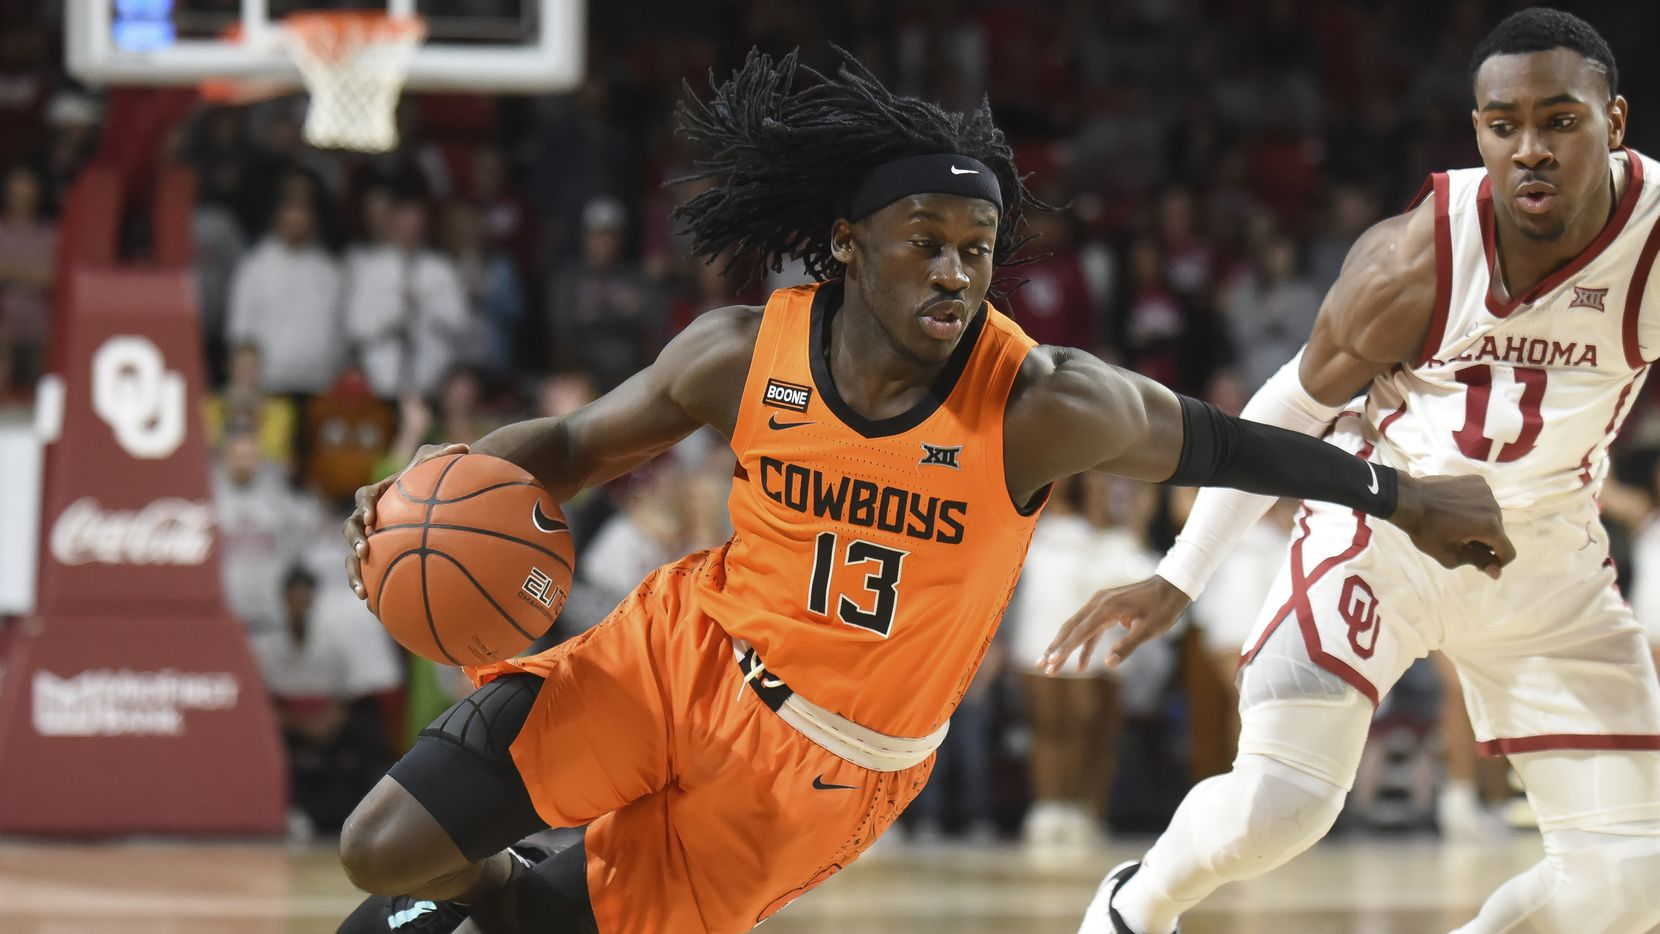 FILE  - In this Feb. 1, 2020, file photo, Oklahoma St. guard Isaac Likekele, left, pushes past Oklahoma guard De'Vion Harmon, right, during the first half of an NCAA college basketball game in Norman, Okla. Likekele, a junior guard, was Oklahoma State's No. 2 scorer last season with 10.9 points per game. (AP Photo/Kyle Phillips, File)